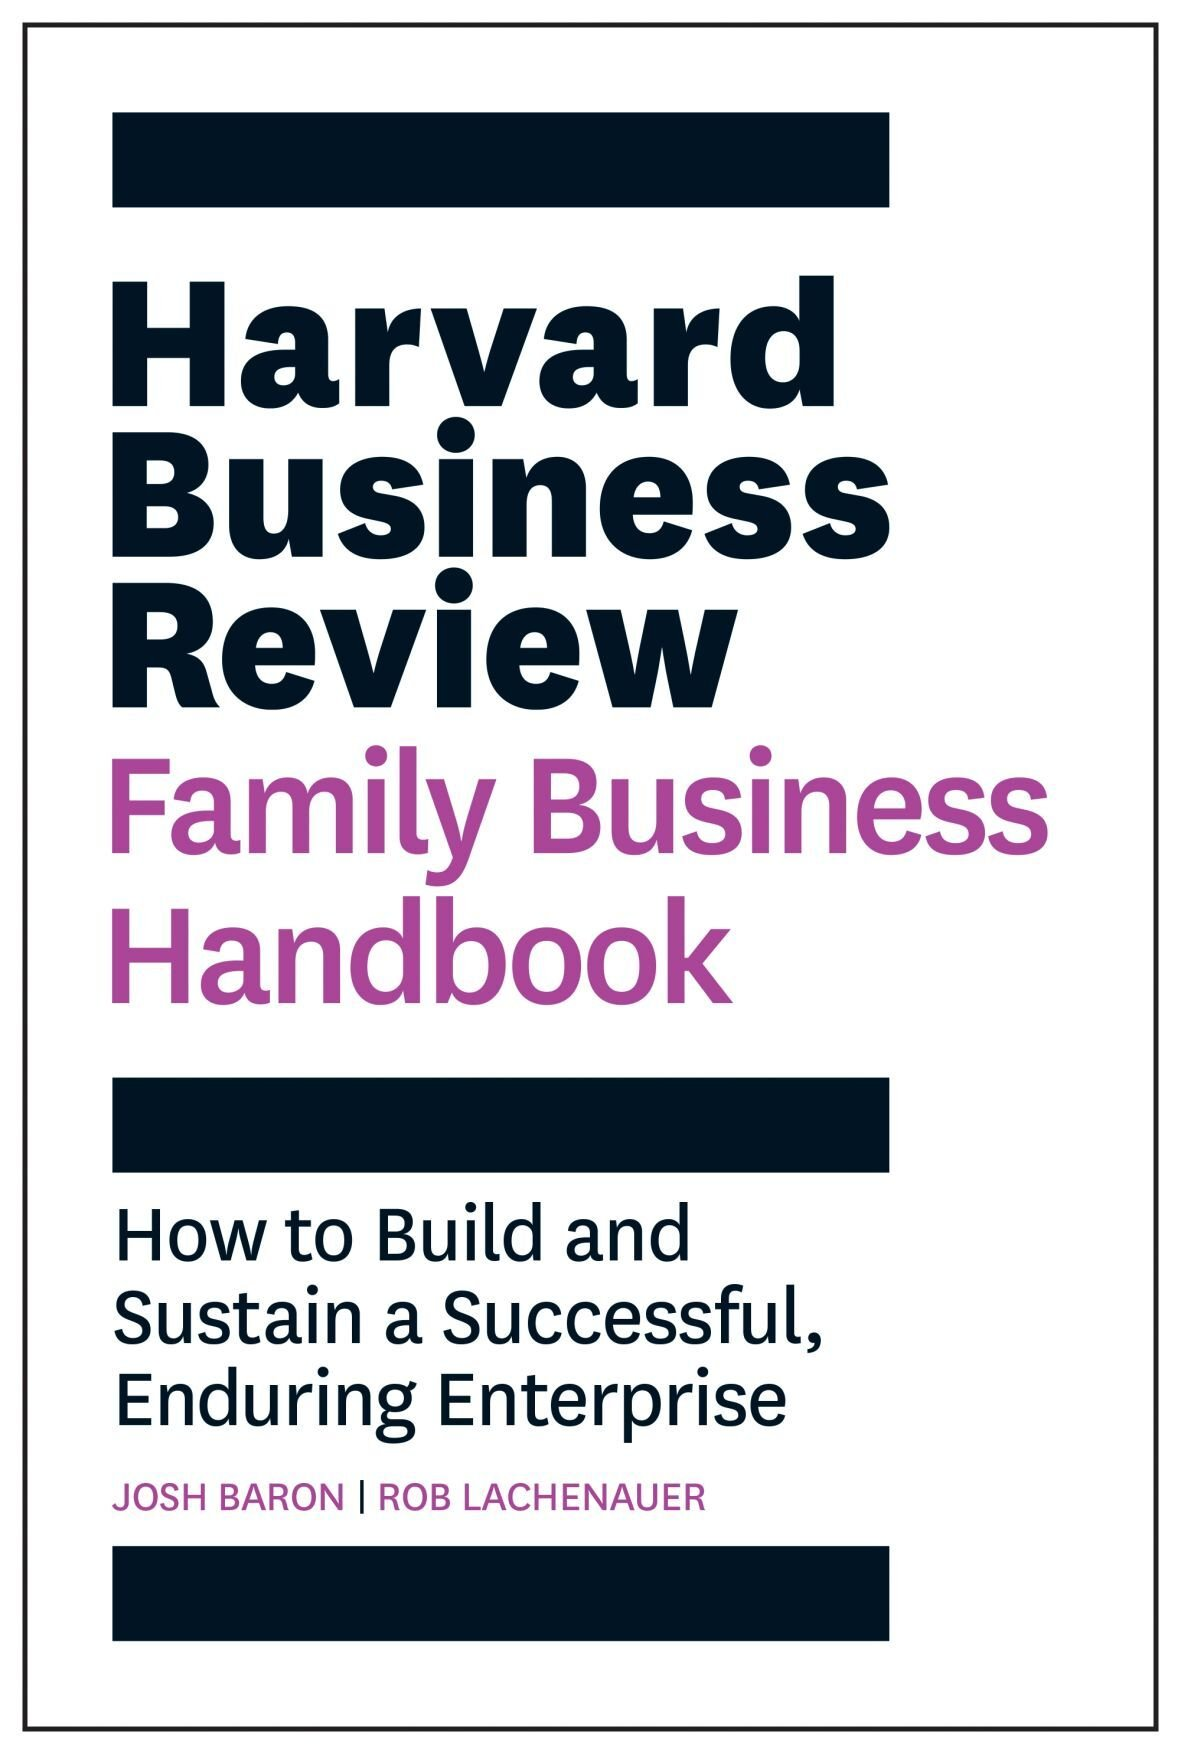 'Harvard Business Review Family Business Handbook' cover